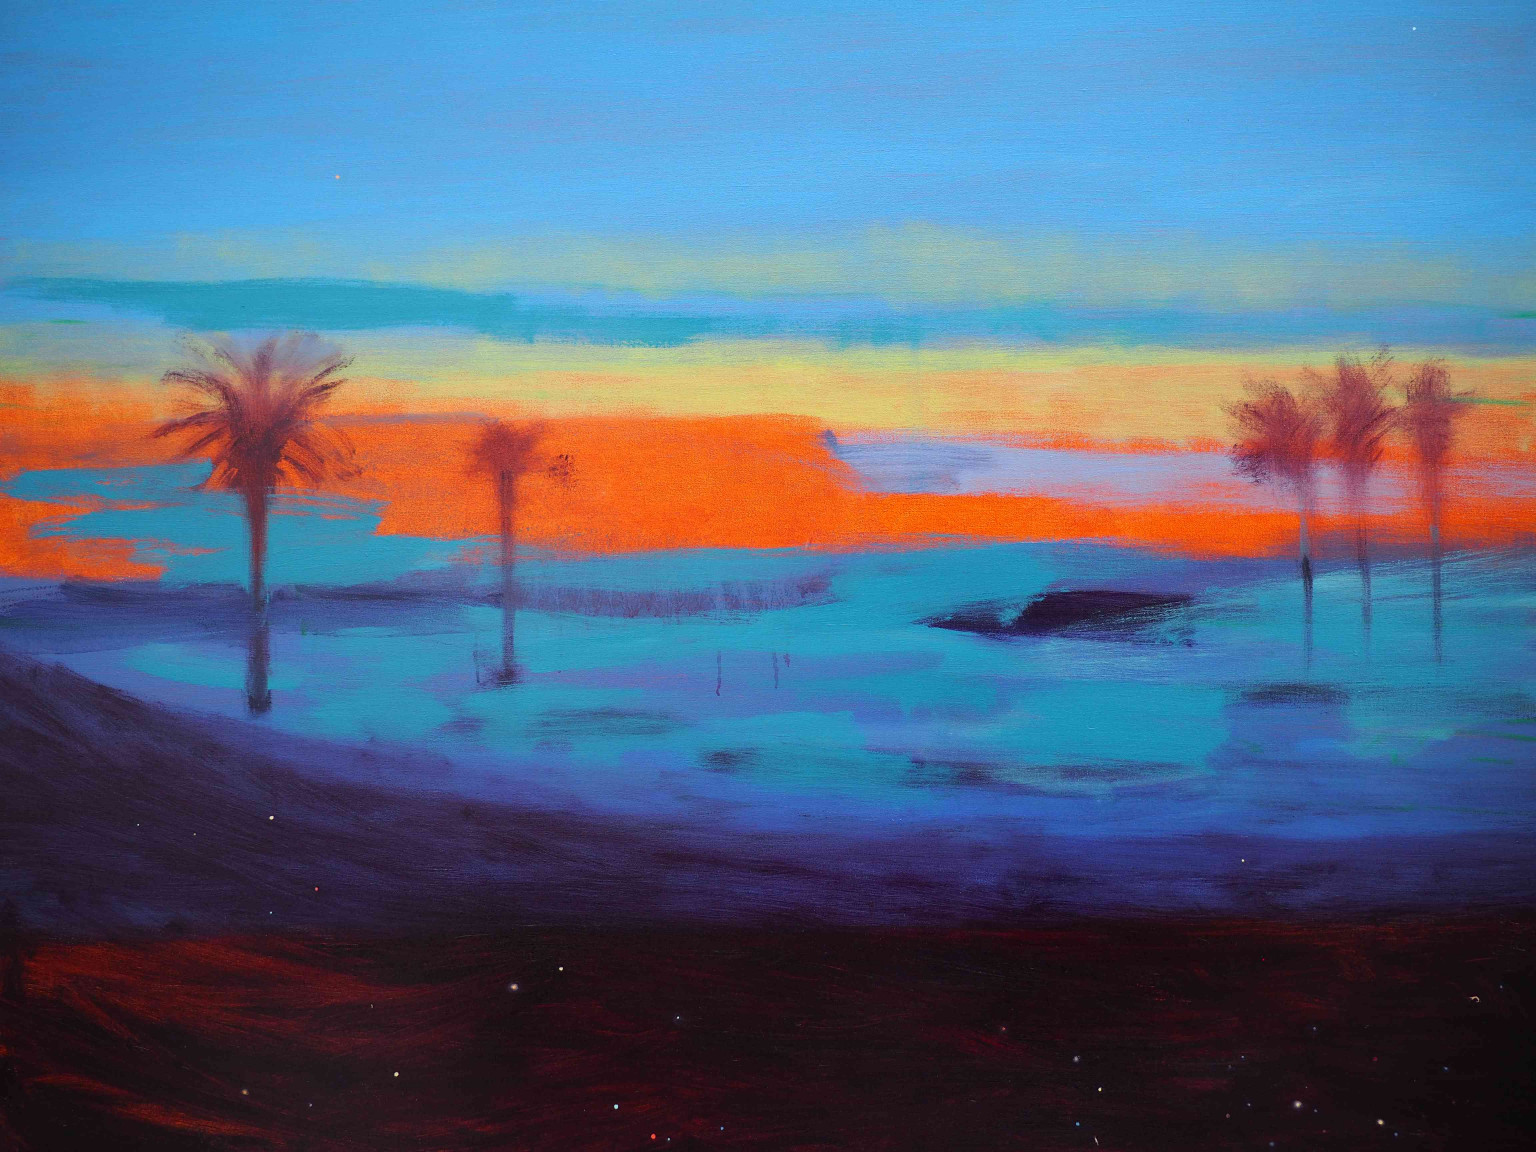 Ocean, Lights and Palms XIII